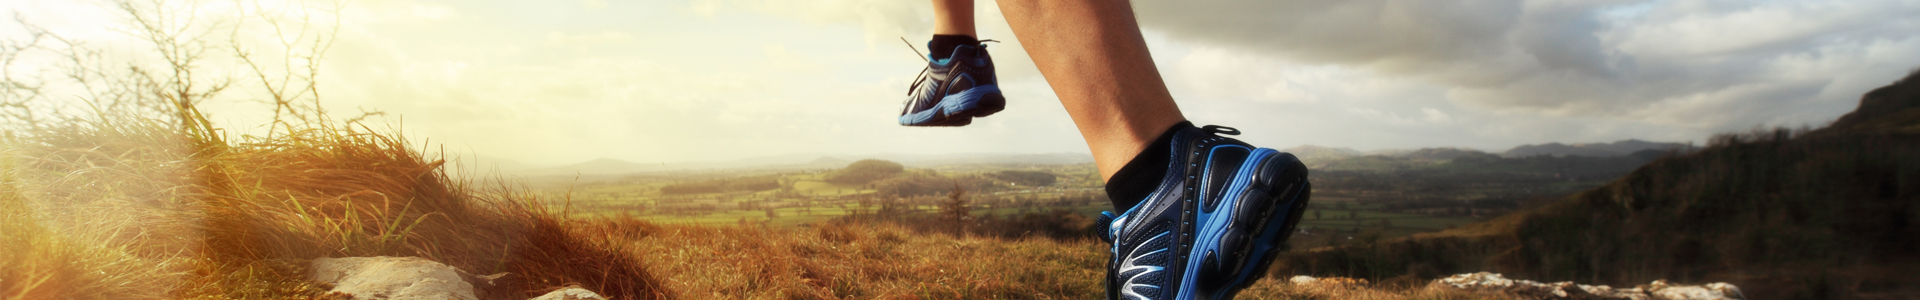 a runner's feet running up a mountain trail